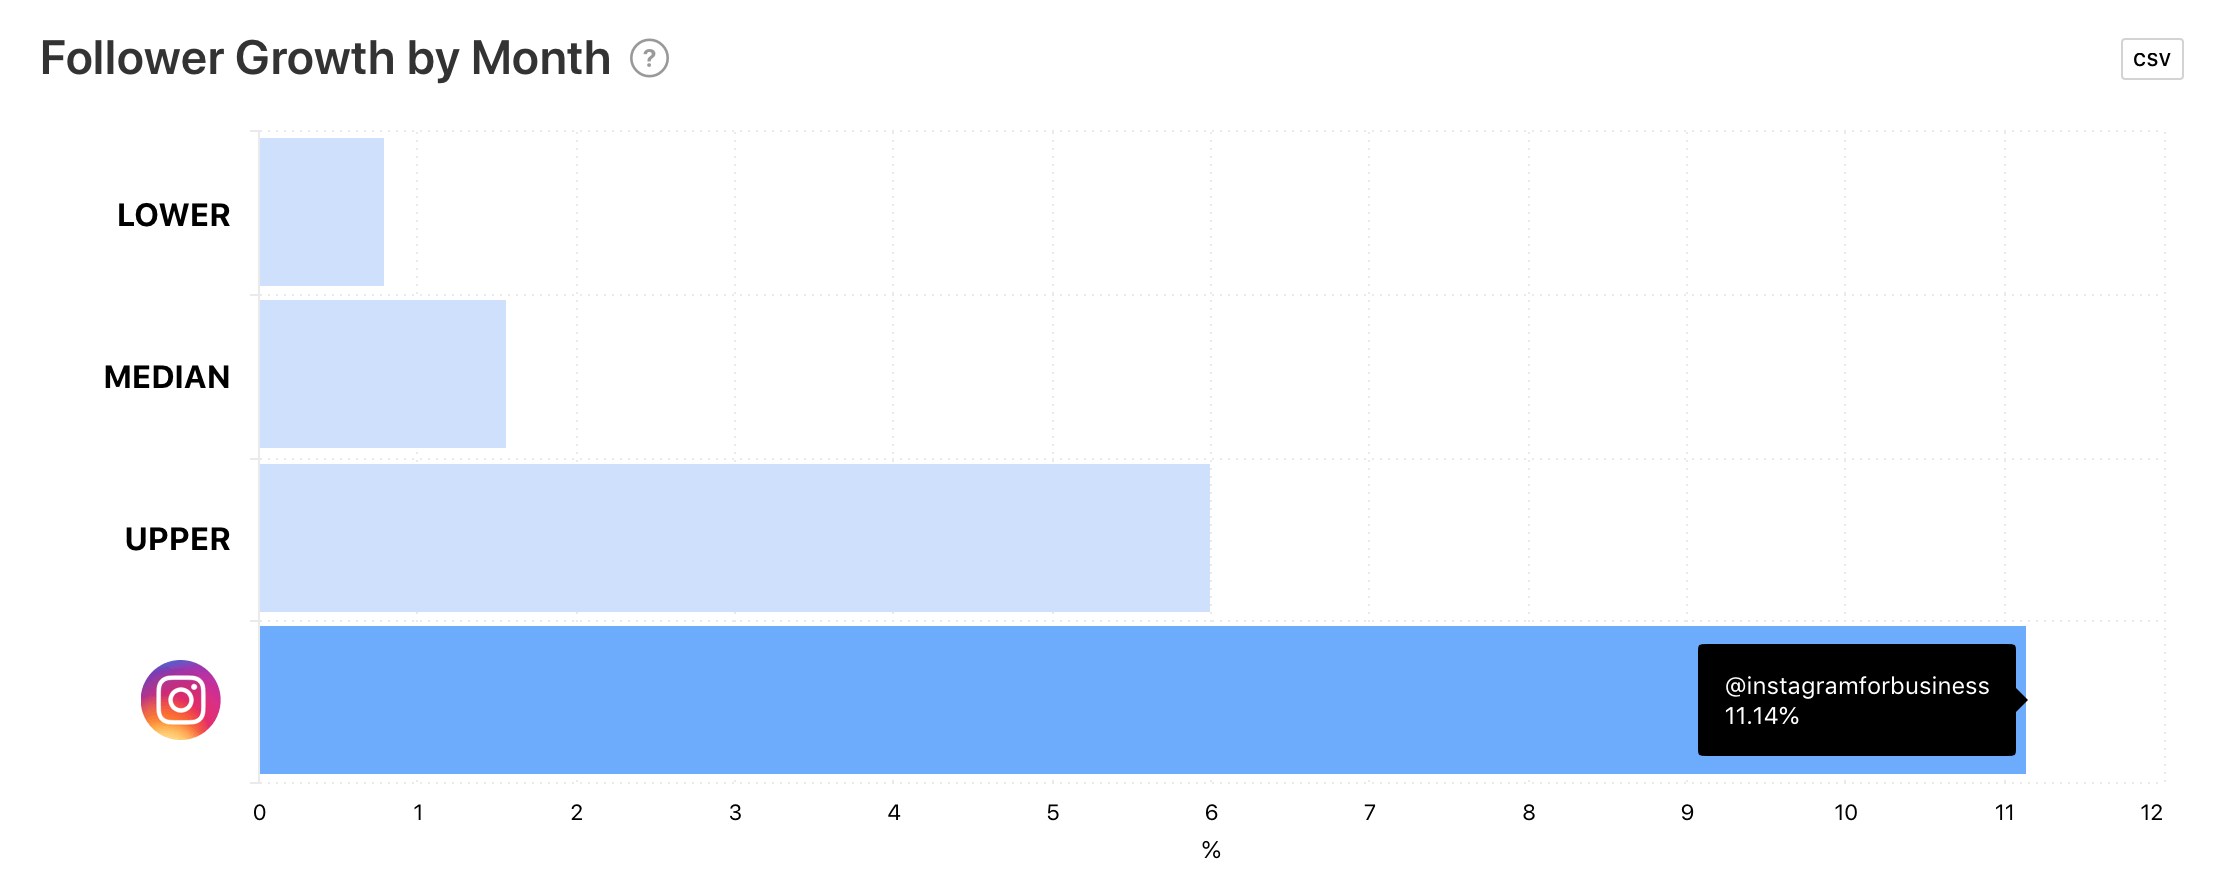 Follower Growth by Month graph for @instagramforbusiness by Minter.io